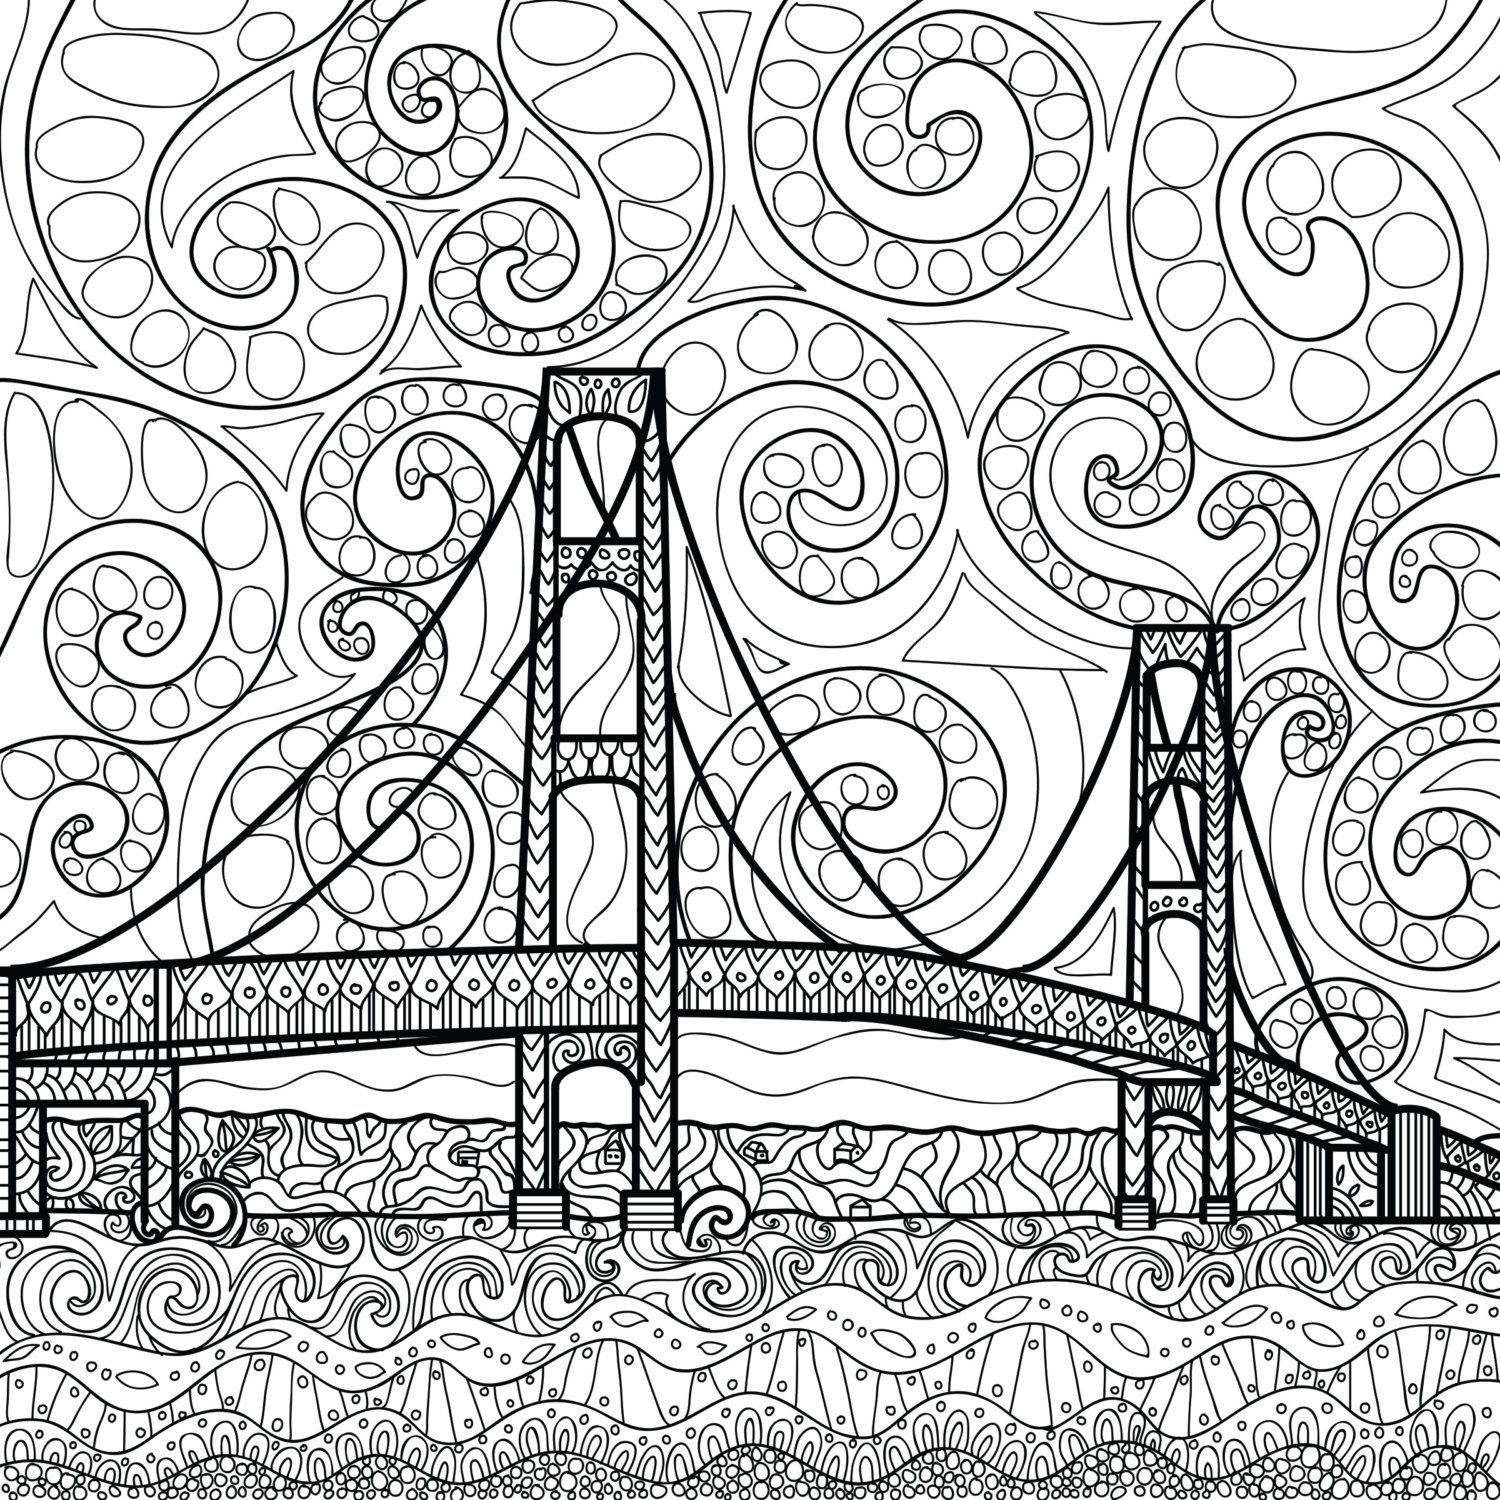 Printable Coloring Page Zentangle Mackinac Island Coloring